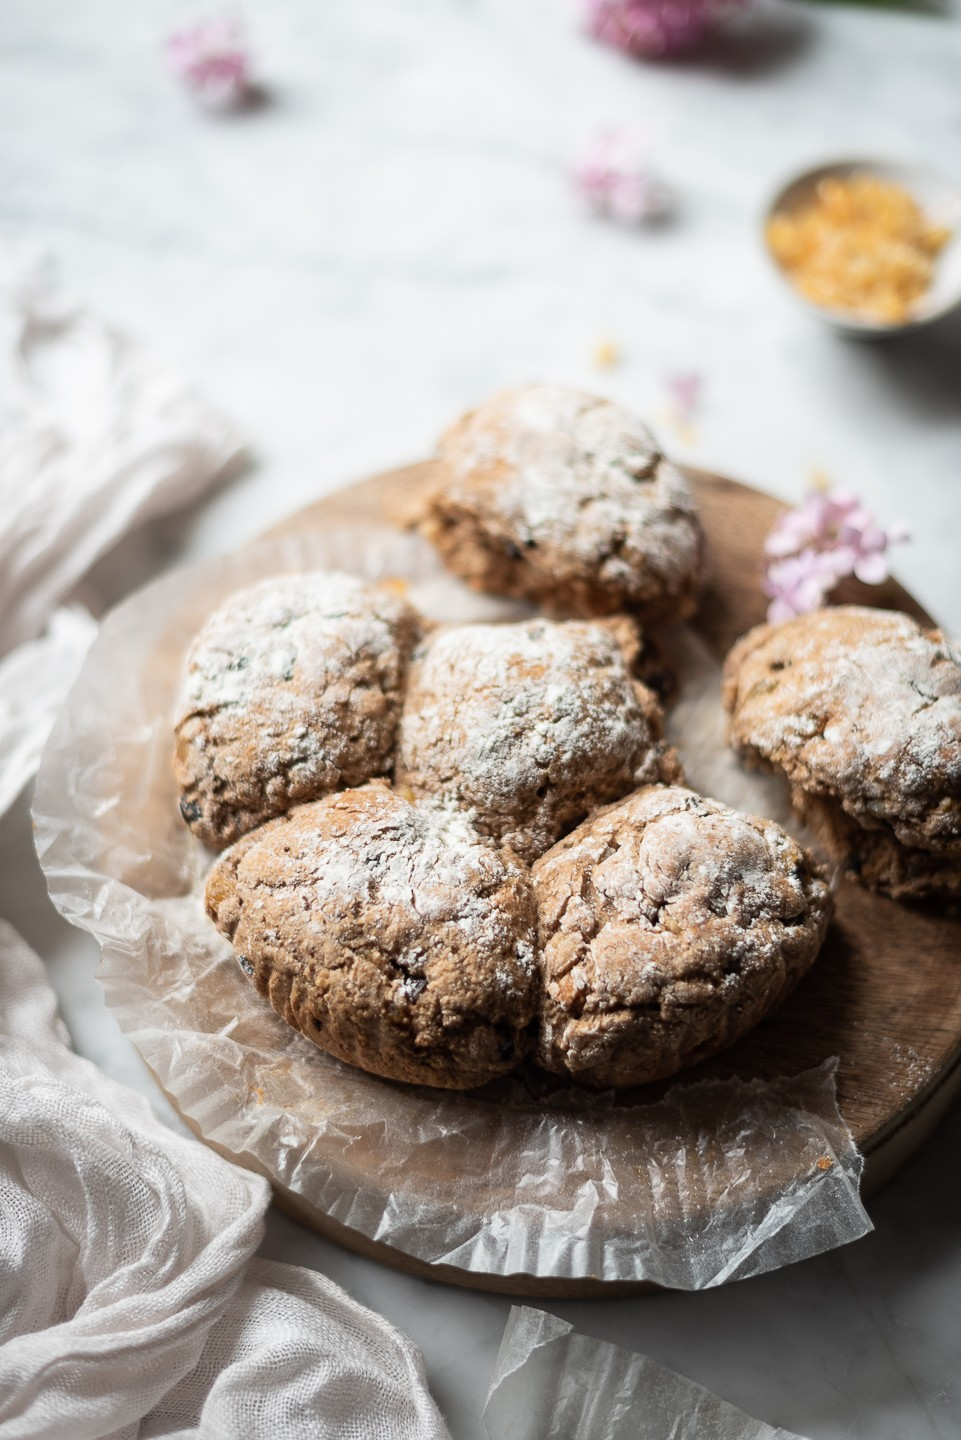 Spicy hot cross bun soda bread | Bibbyskitchen Bread recipes